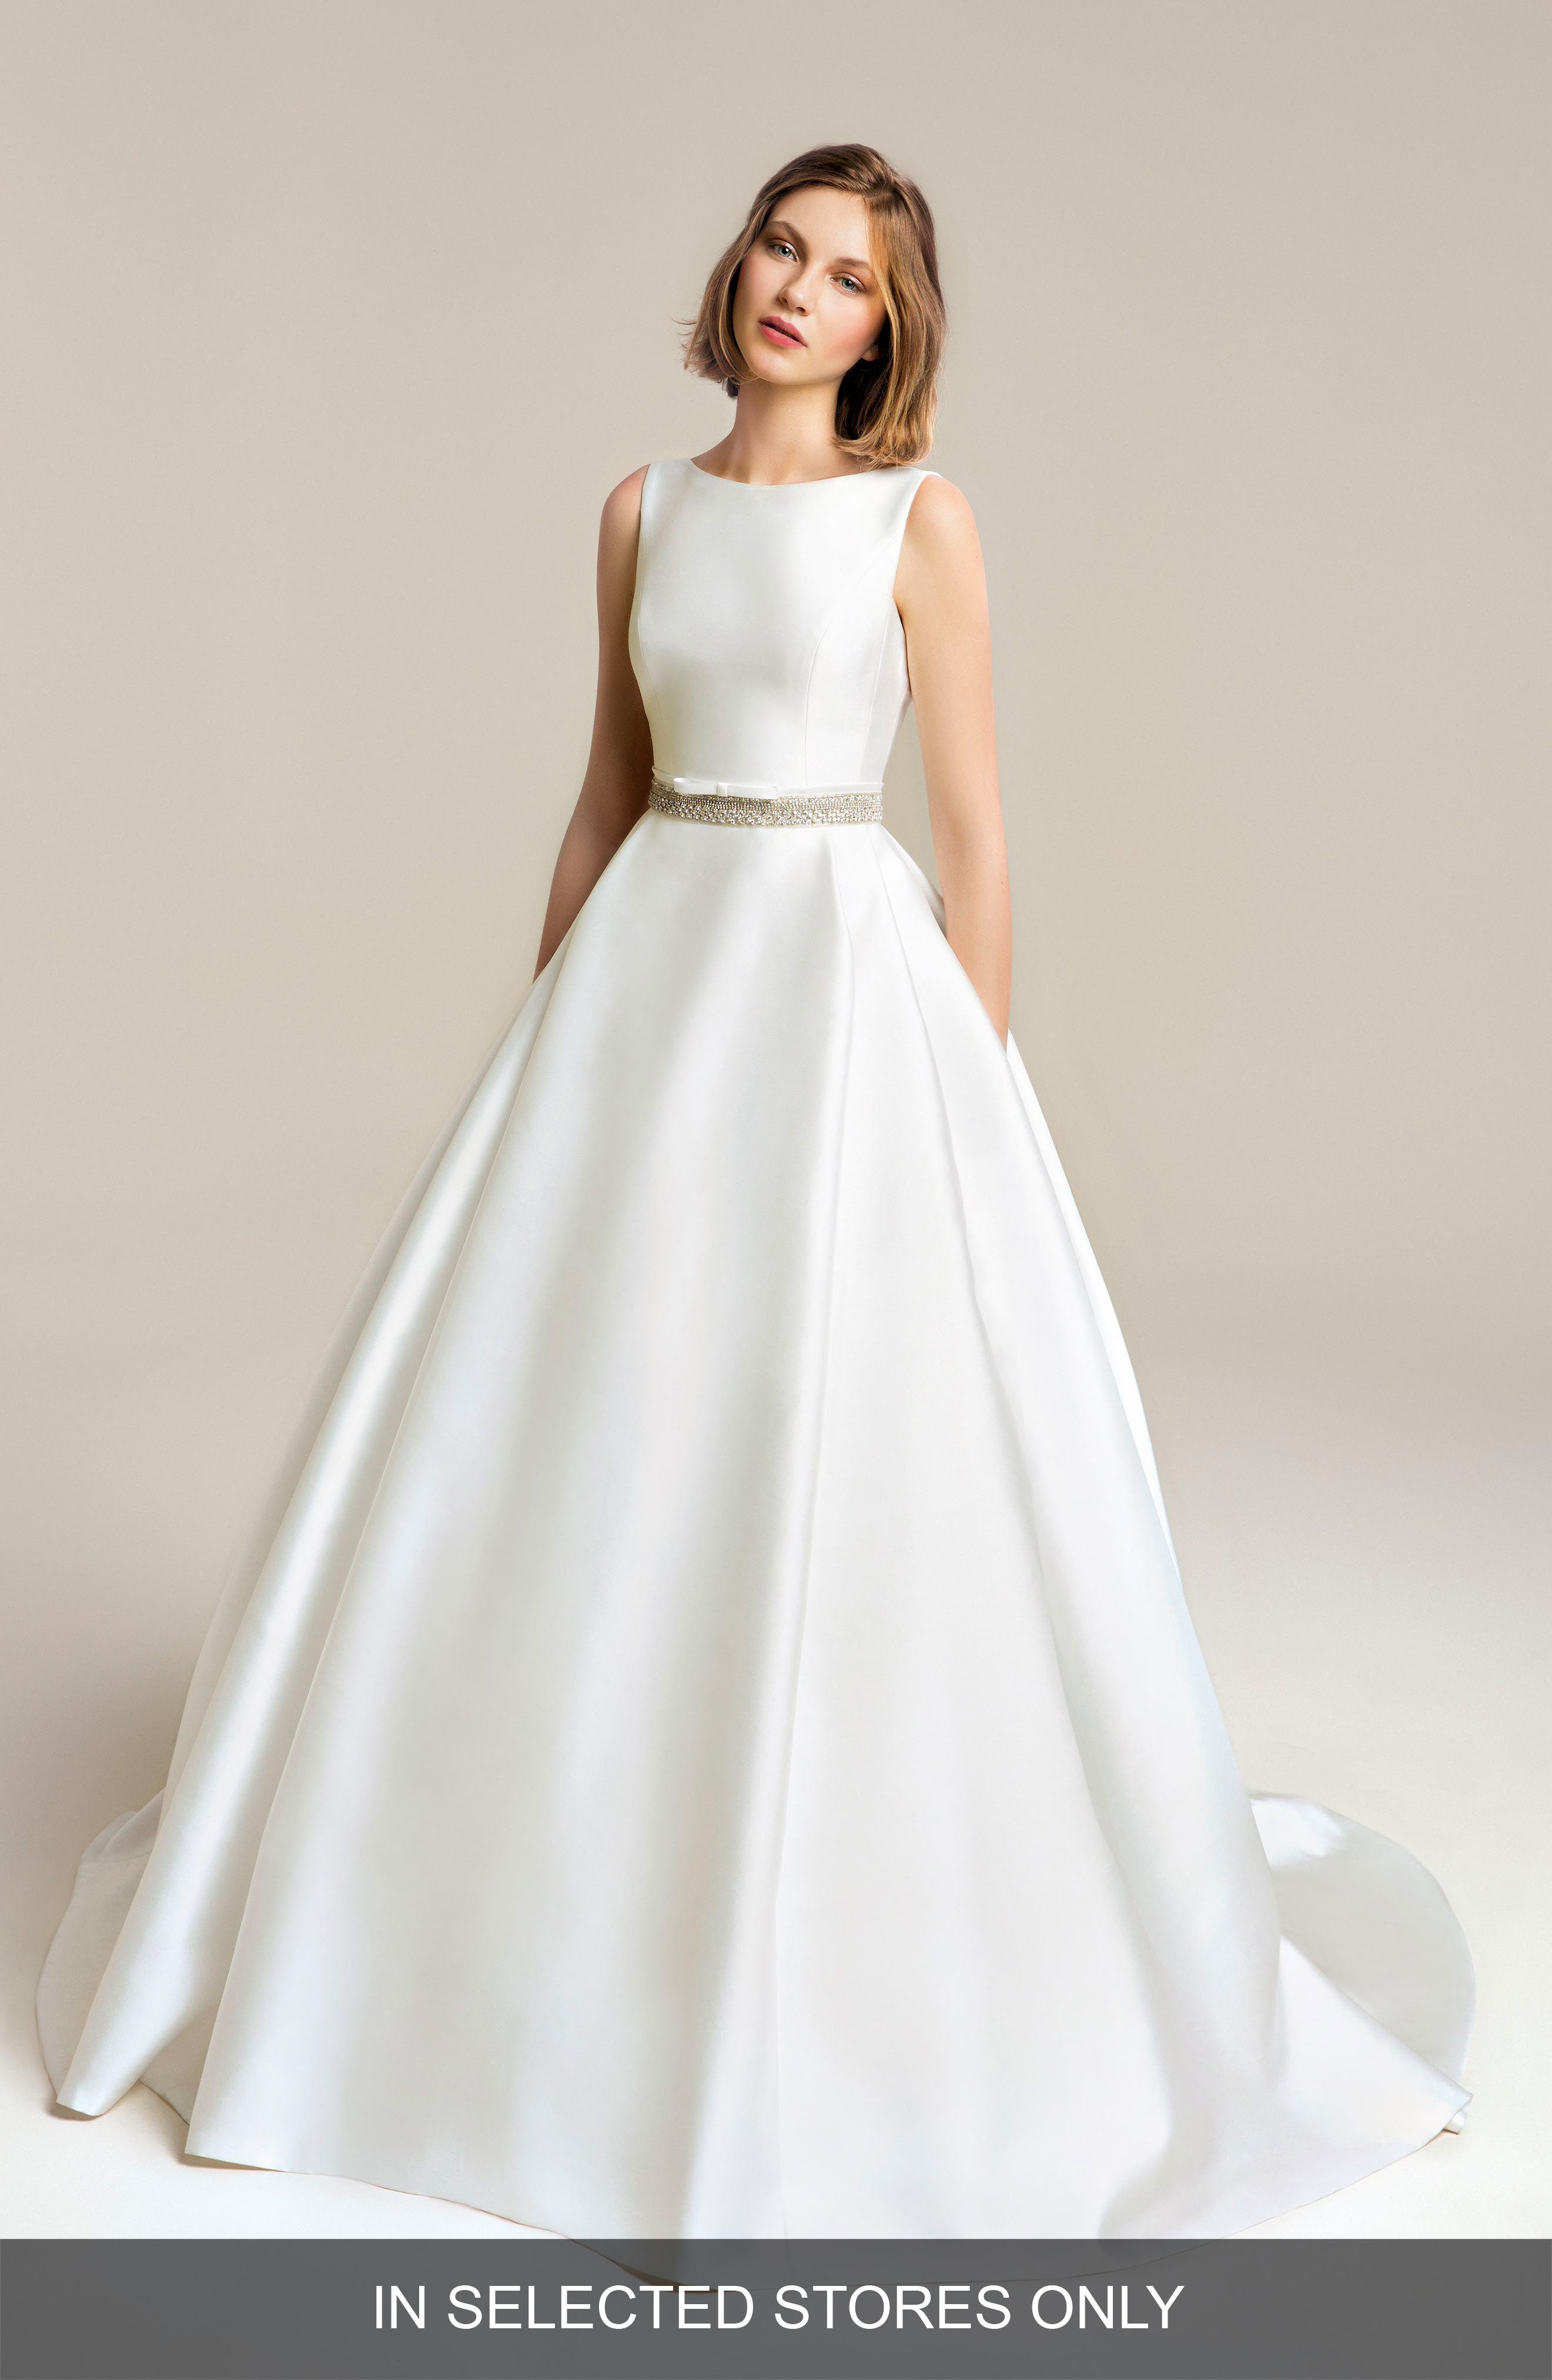 Jesus Peiro Satin Beaded Detail Wedding Dress, Size IN STORE ONLY - White